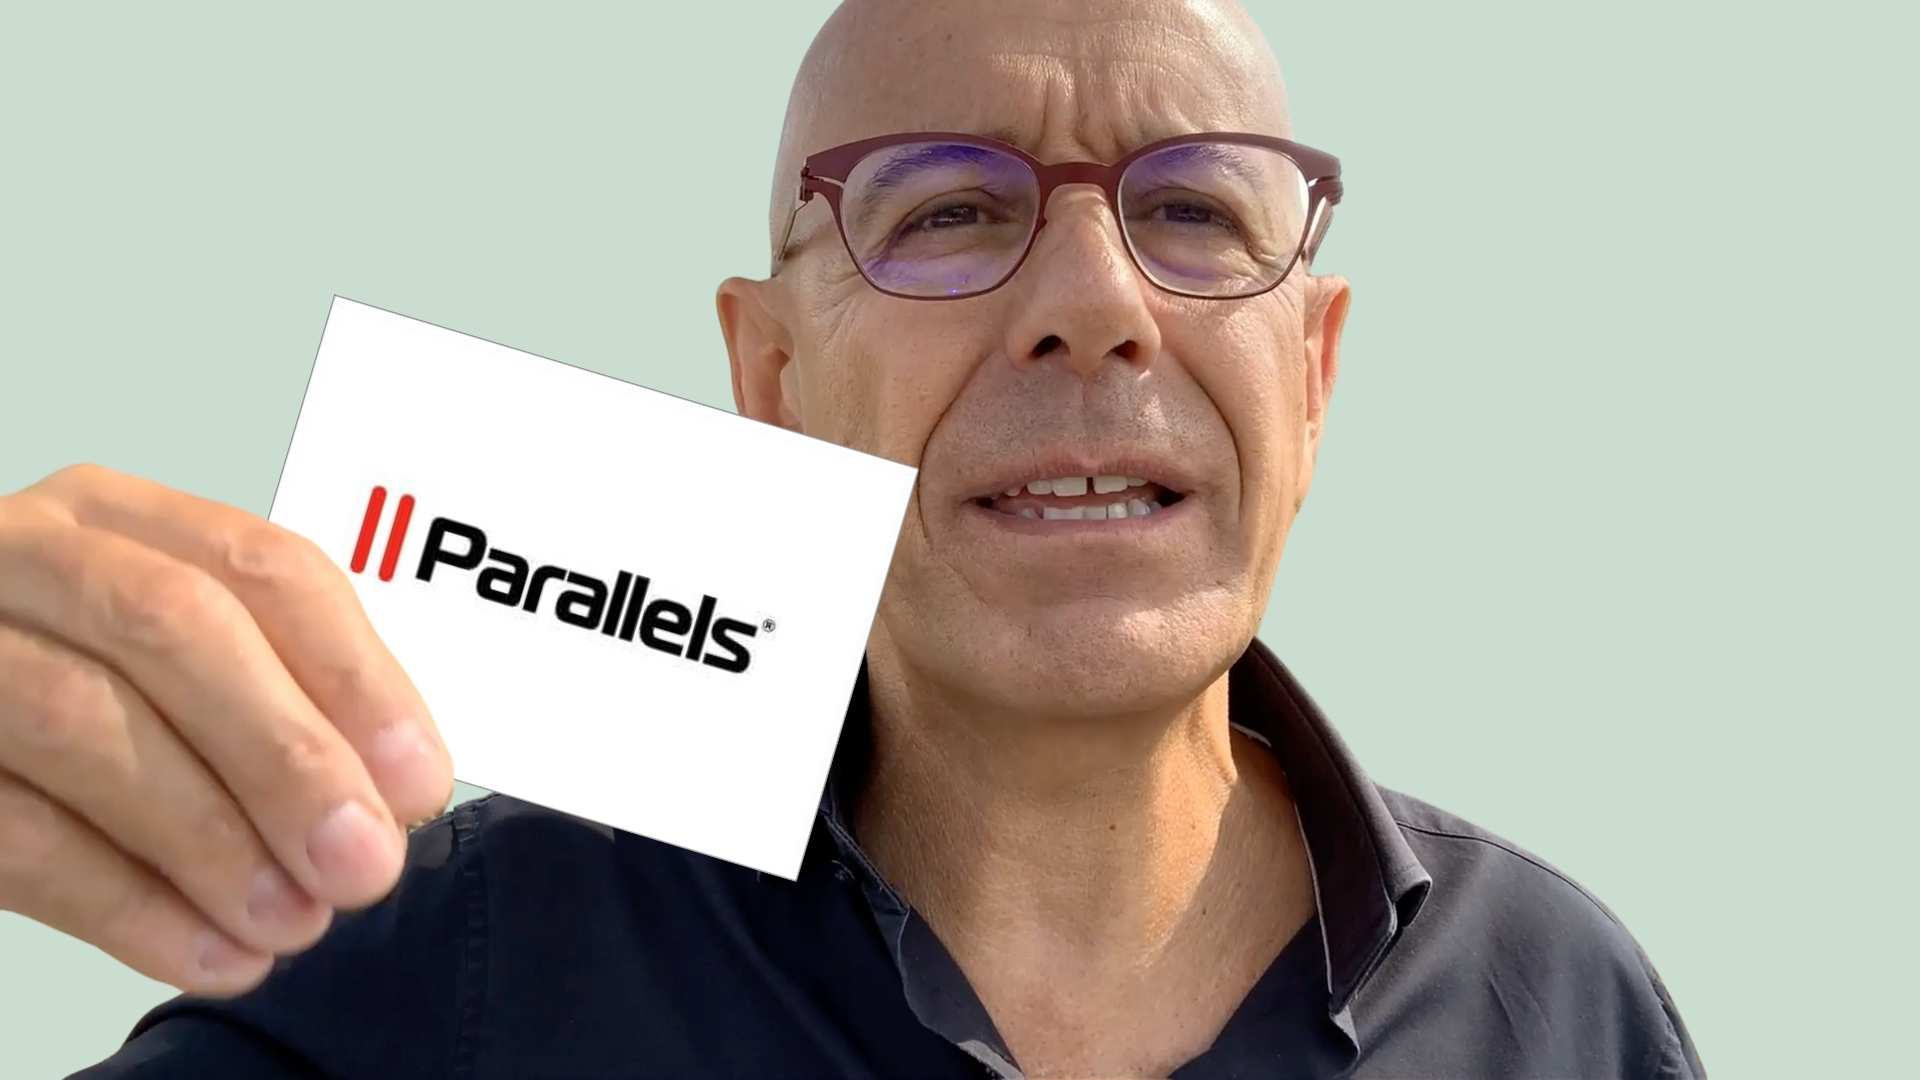 Parallels RAS: come funziona la principale alternativa a Citrix